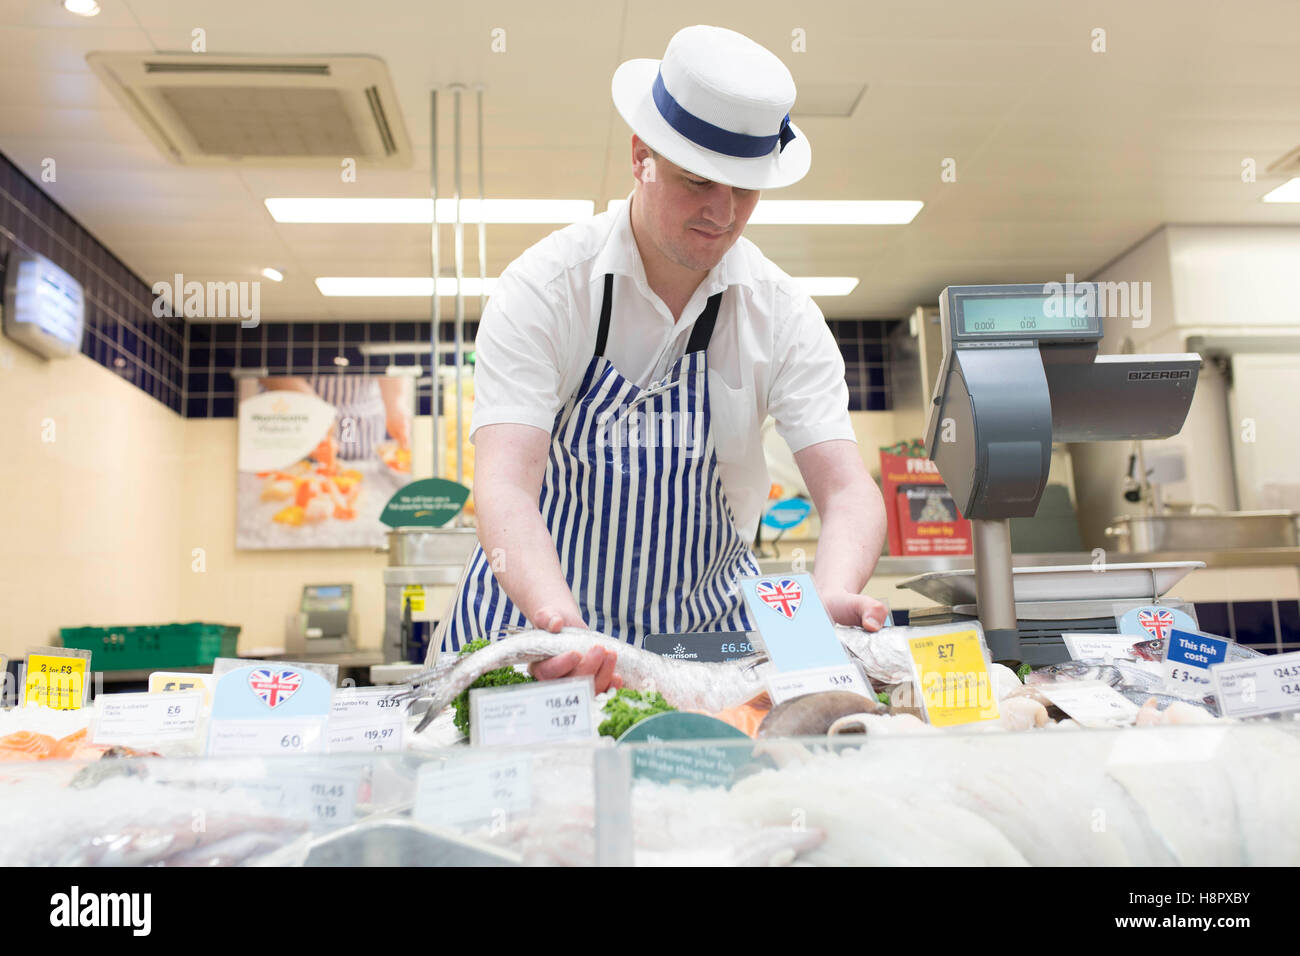 Interior of a Morrisons supermarket. Fishmonger - Stock Image